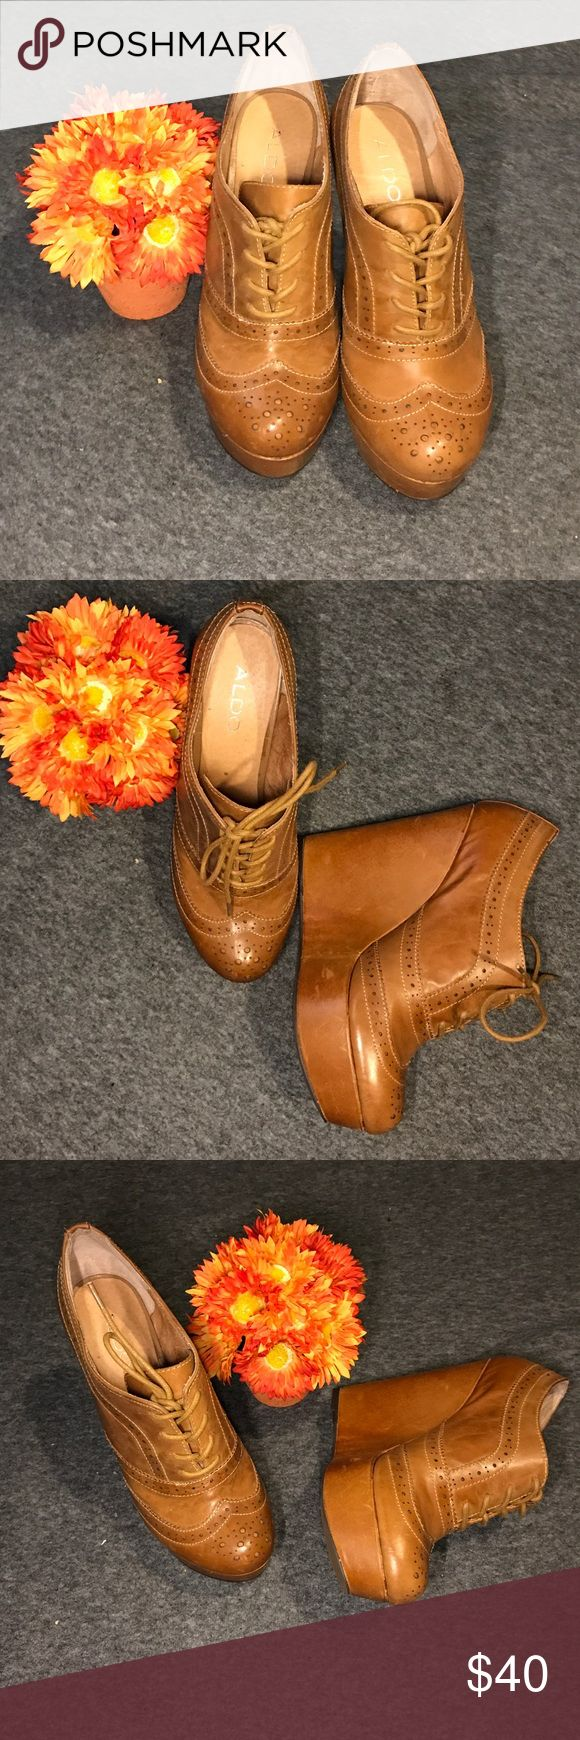 👠ALDO LADIES WEDGE SHOE👠 👠ALDO LADIES WEDGE SHOE👠 Great Classy shoes, Leather, New with box, A girl can always walk in a wedge hill🤣 Tan Color can be worn with almost anything, very comfortable, 5in heel, 2 1/2 in platform, awesome shoes💥 Aldo Shoes Wedges